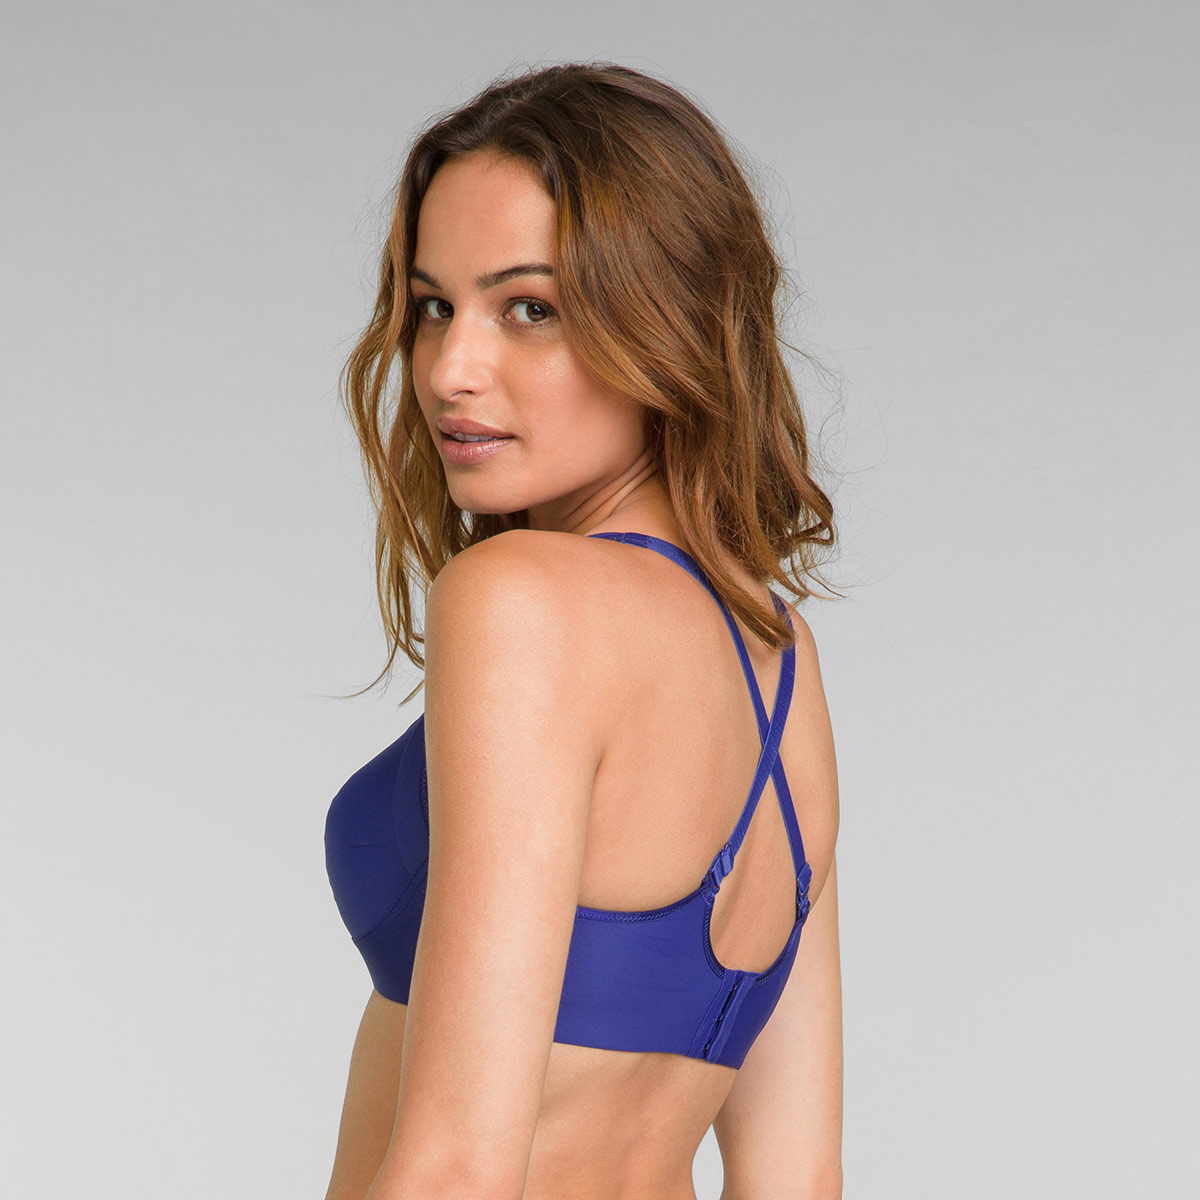 Non Wired Bra in Sami Blue Feel Good Support, , PLAYTEX